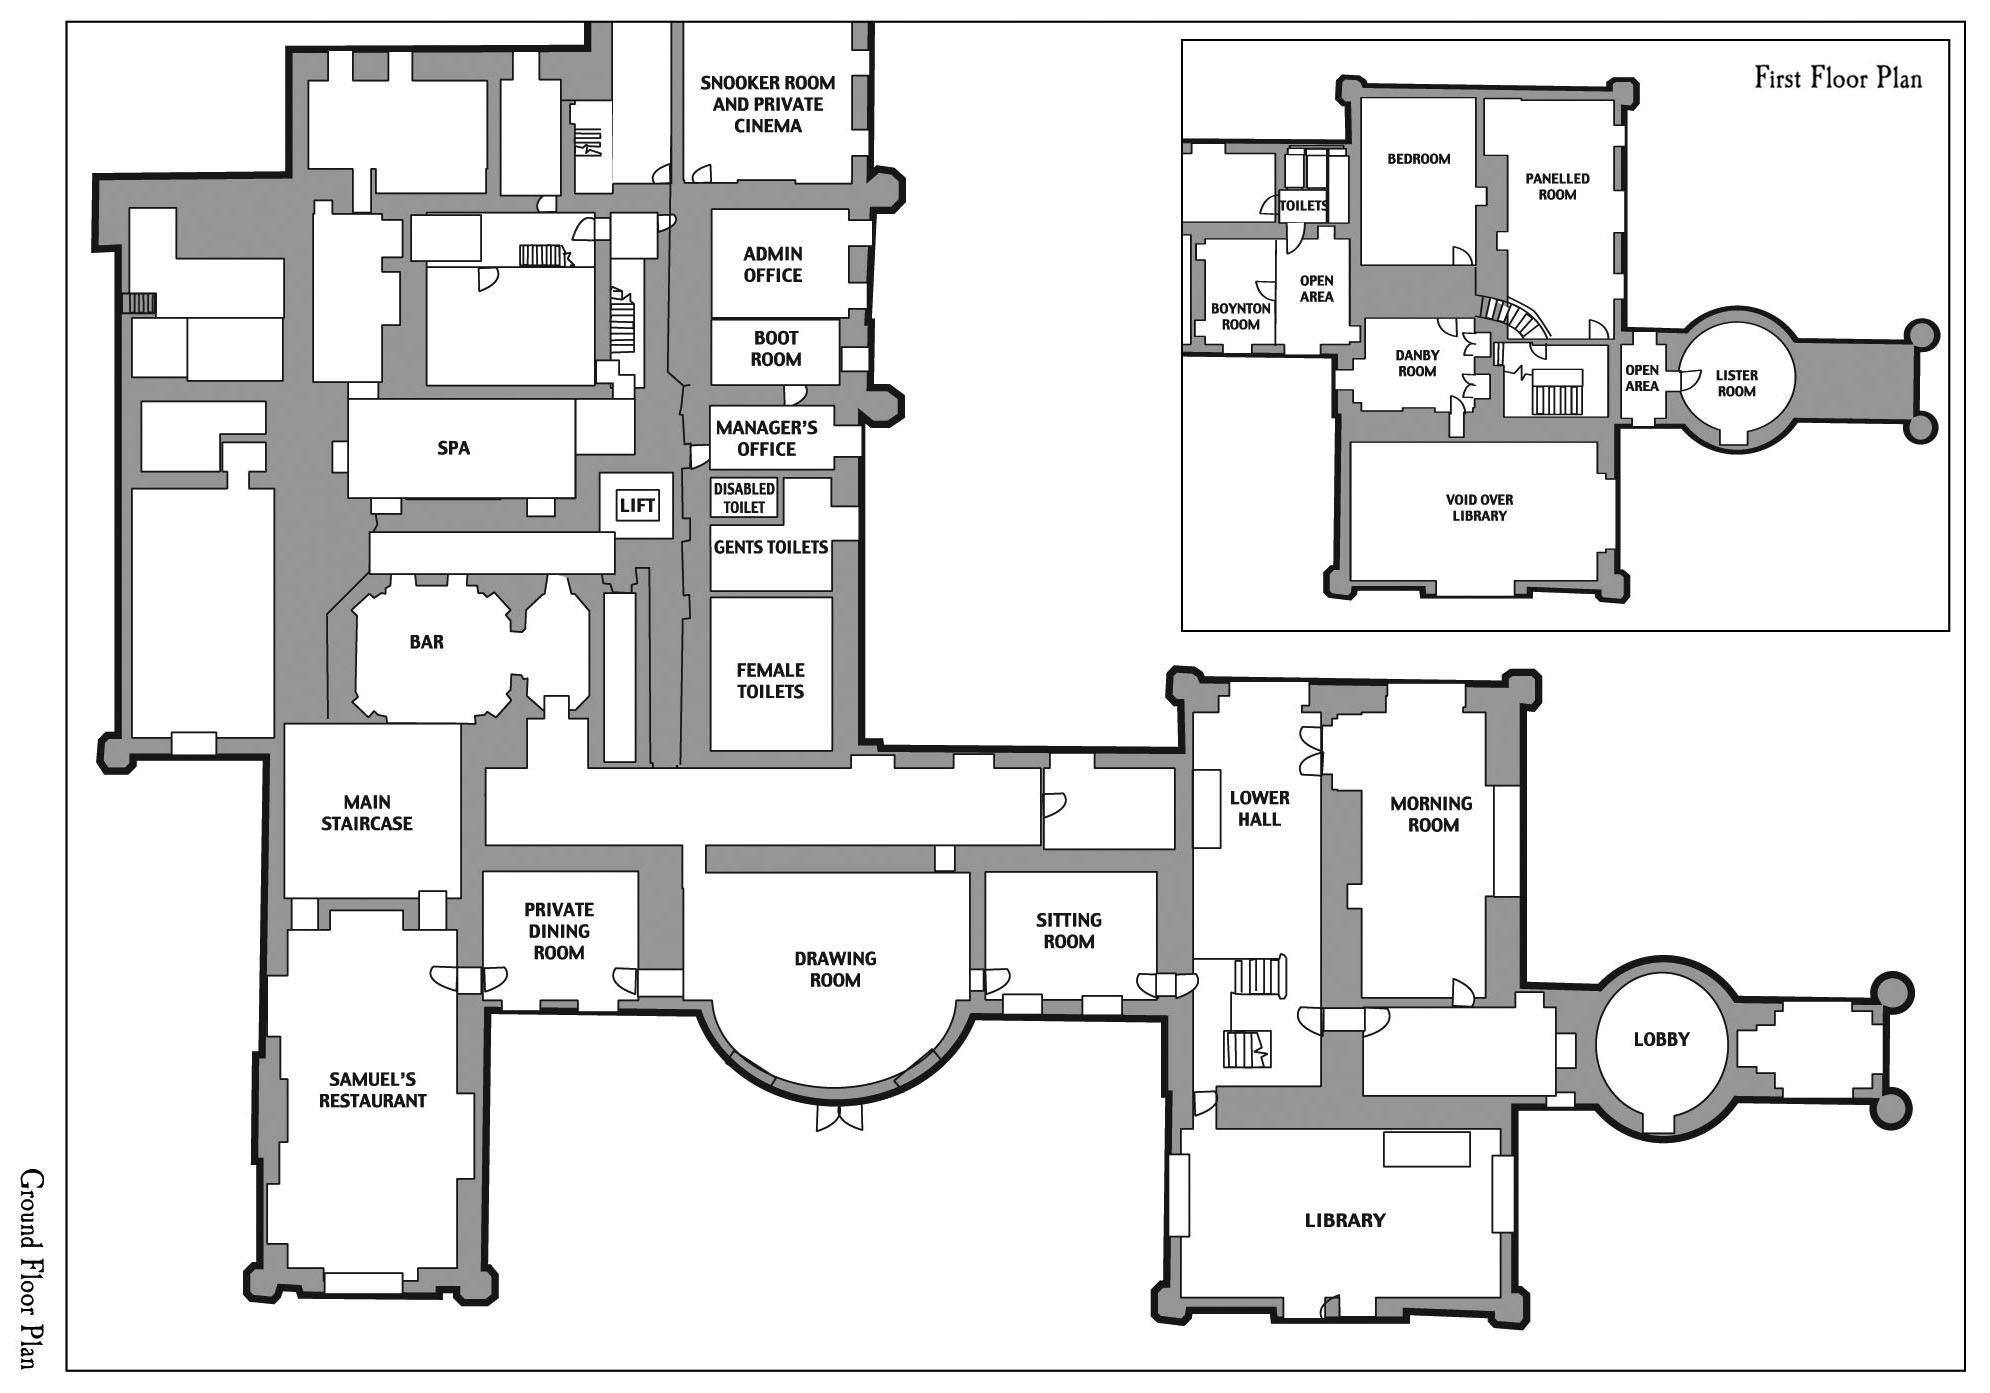 Ground Floor Plan - Click above for full size image. (opens in new window)